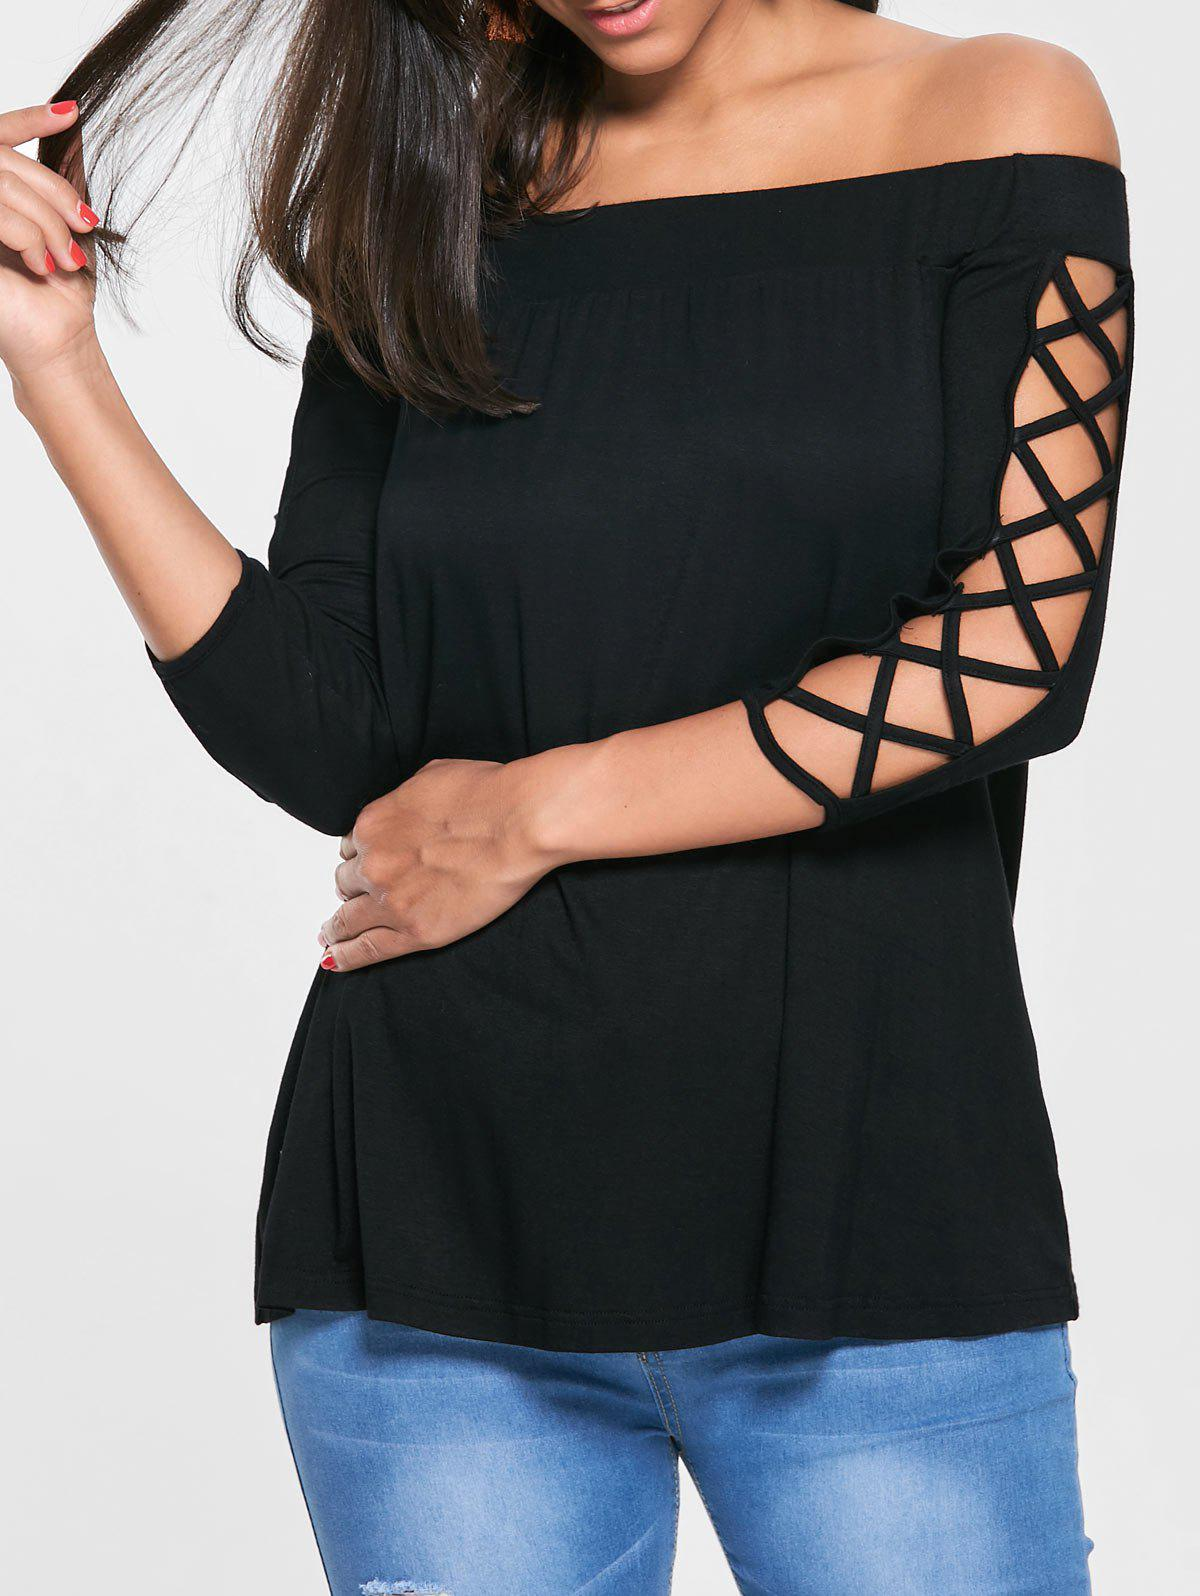 Cutout Off The Shoulder T shirt 221060102